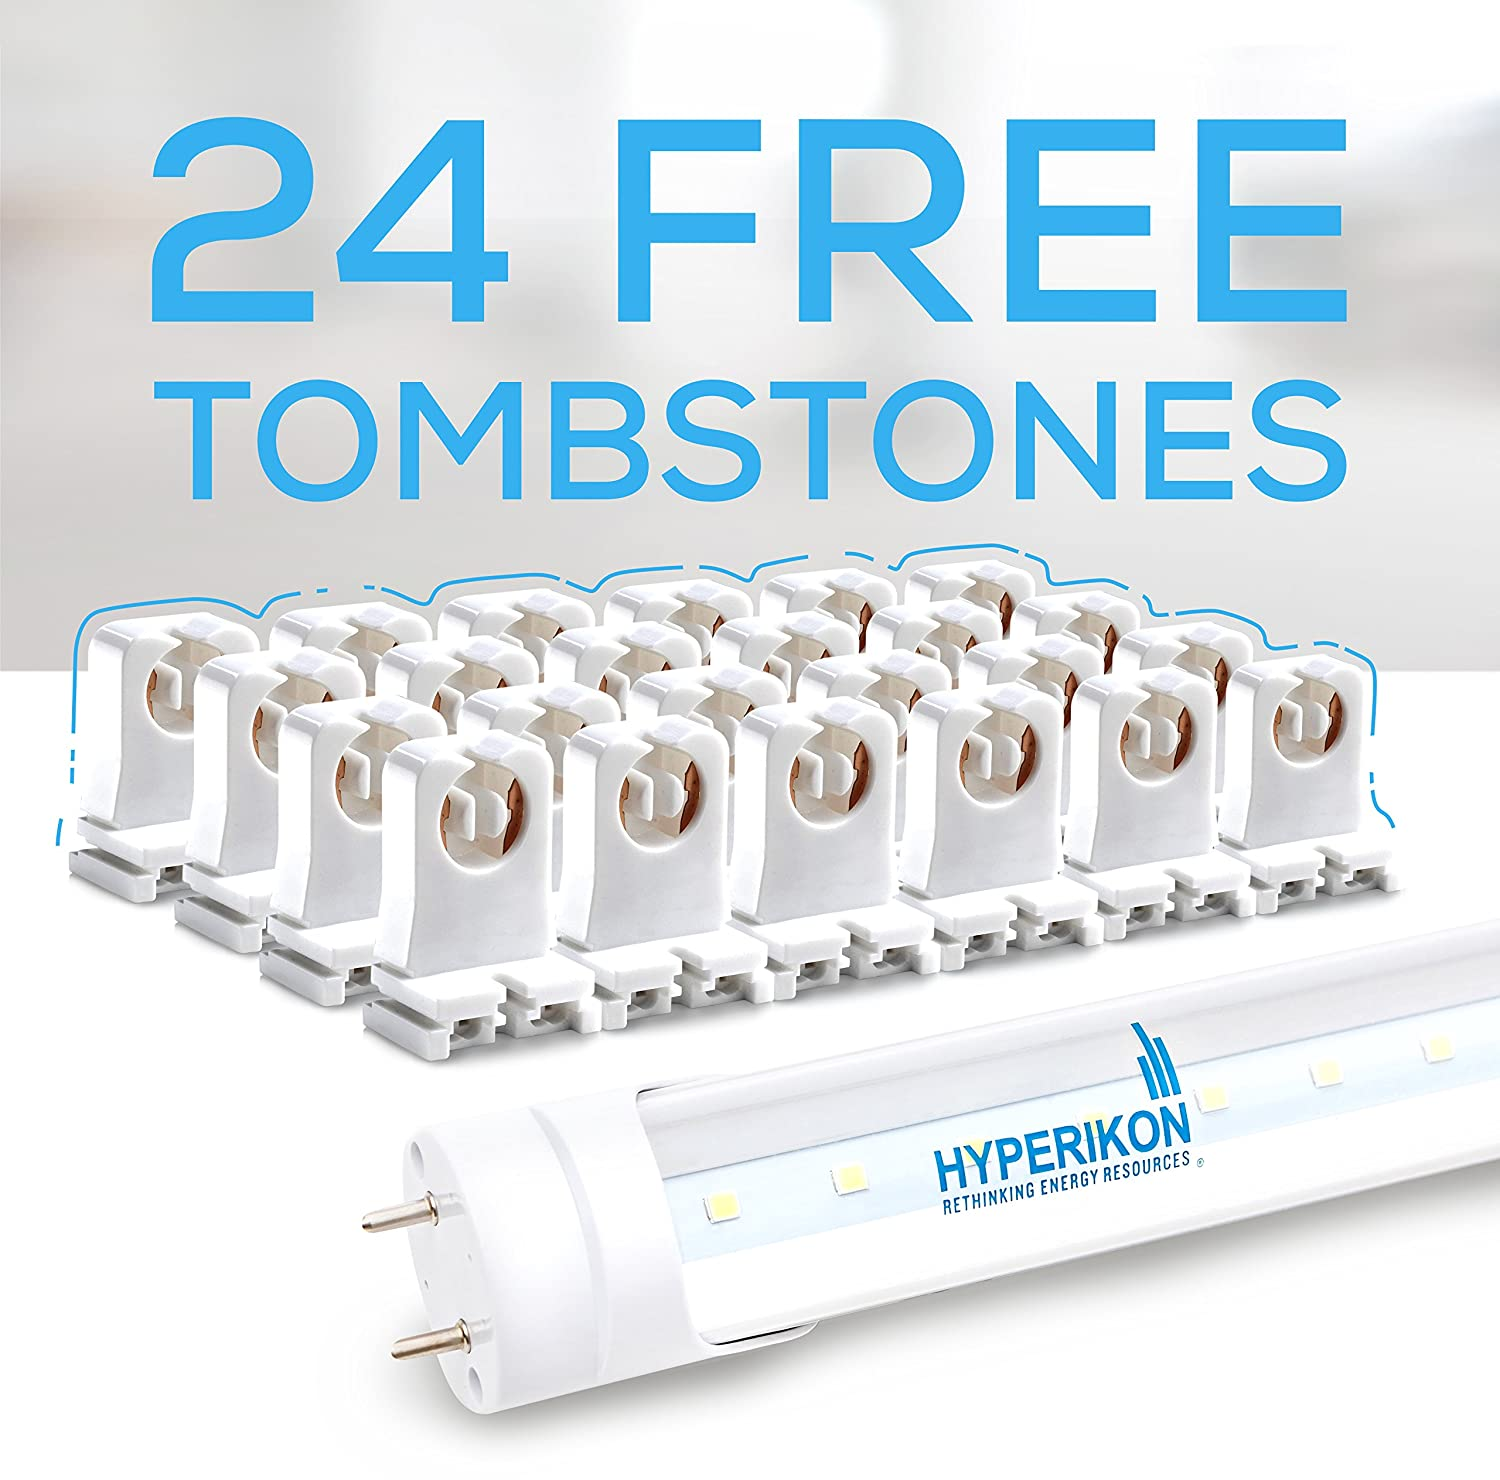 Hyperikon t8 led light tube 4ft 18w 40w equivalent 3000k soft hyperikon t8 led light tube 4ft 18w 40w equivalent 3000k soft white glow single ended power clear ul dlc 24 pack 24 tombstones included arubaitofo Images